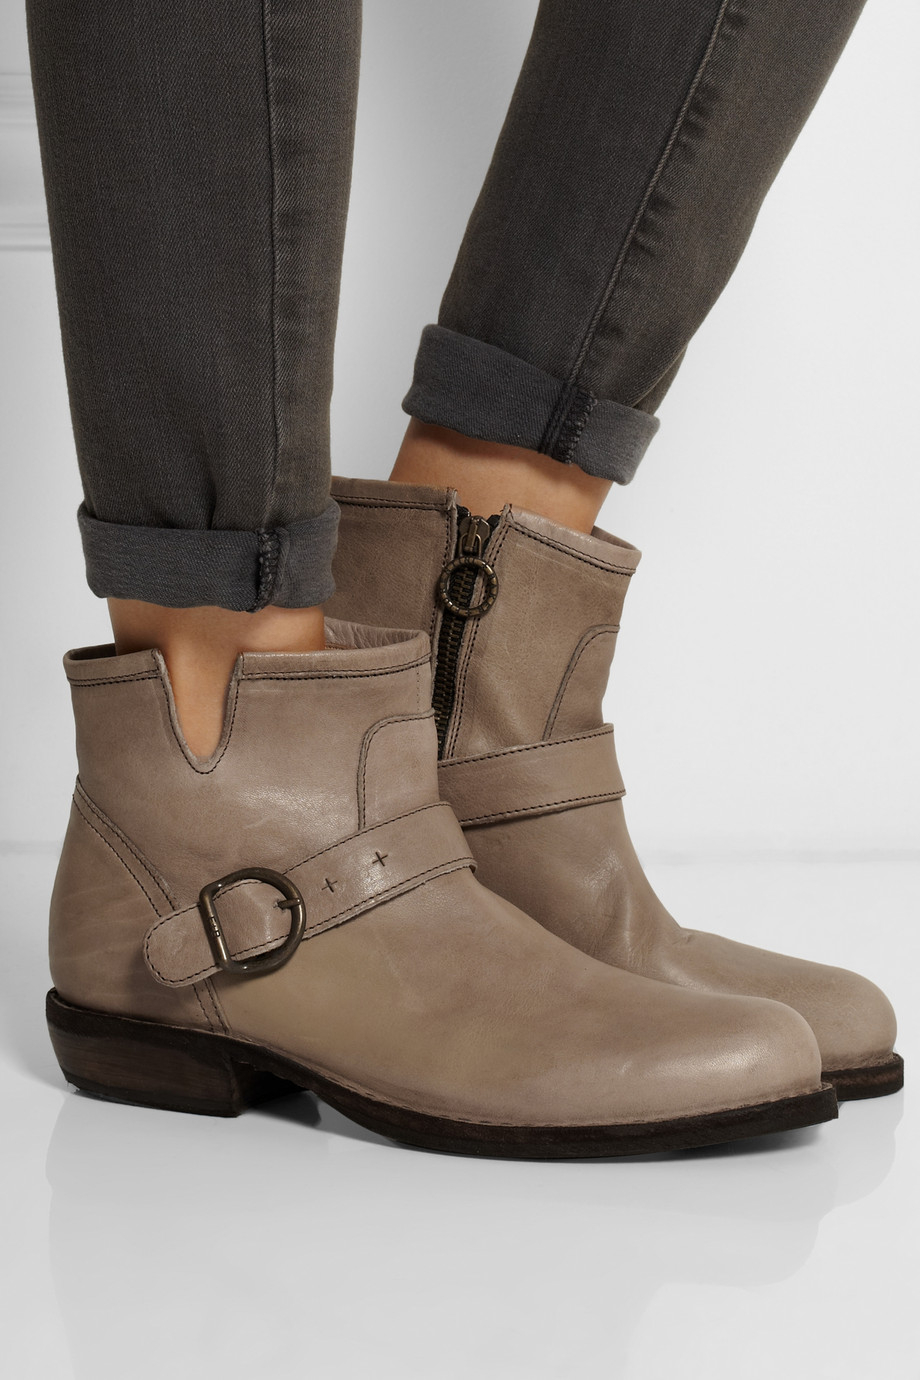 Lyst Fiorentini Baker Chad Carnaby Leather Ankle Boots